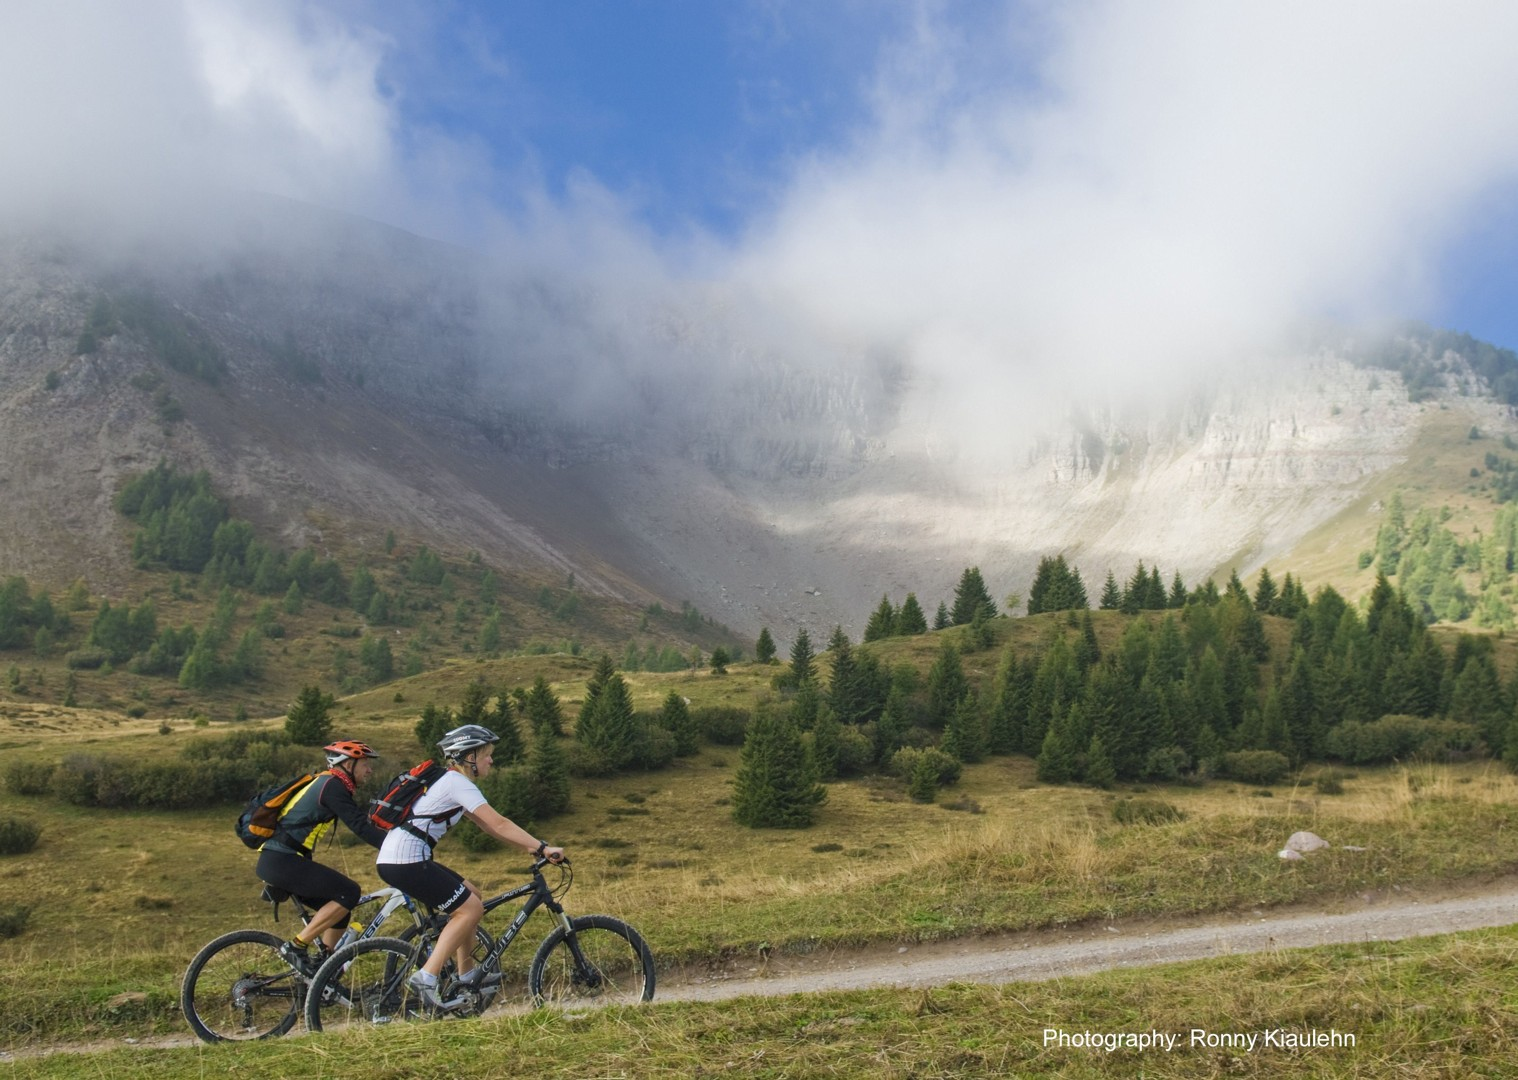 dolomites3.jpg - Italy - Dolomites of Brenta - Guided Mountain Bike Holiday - Italia Mountain Biking